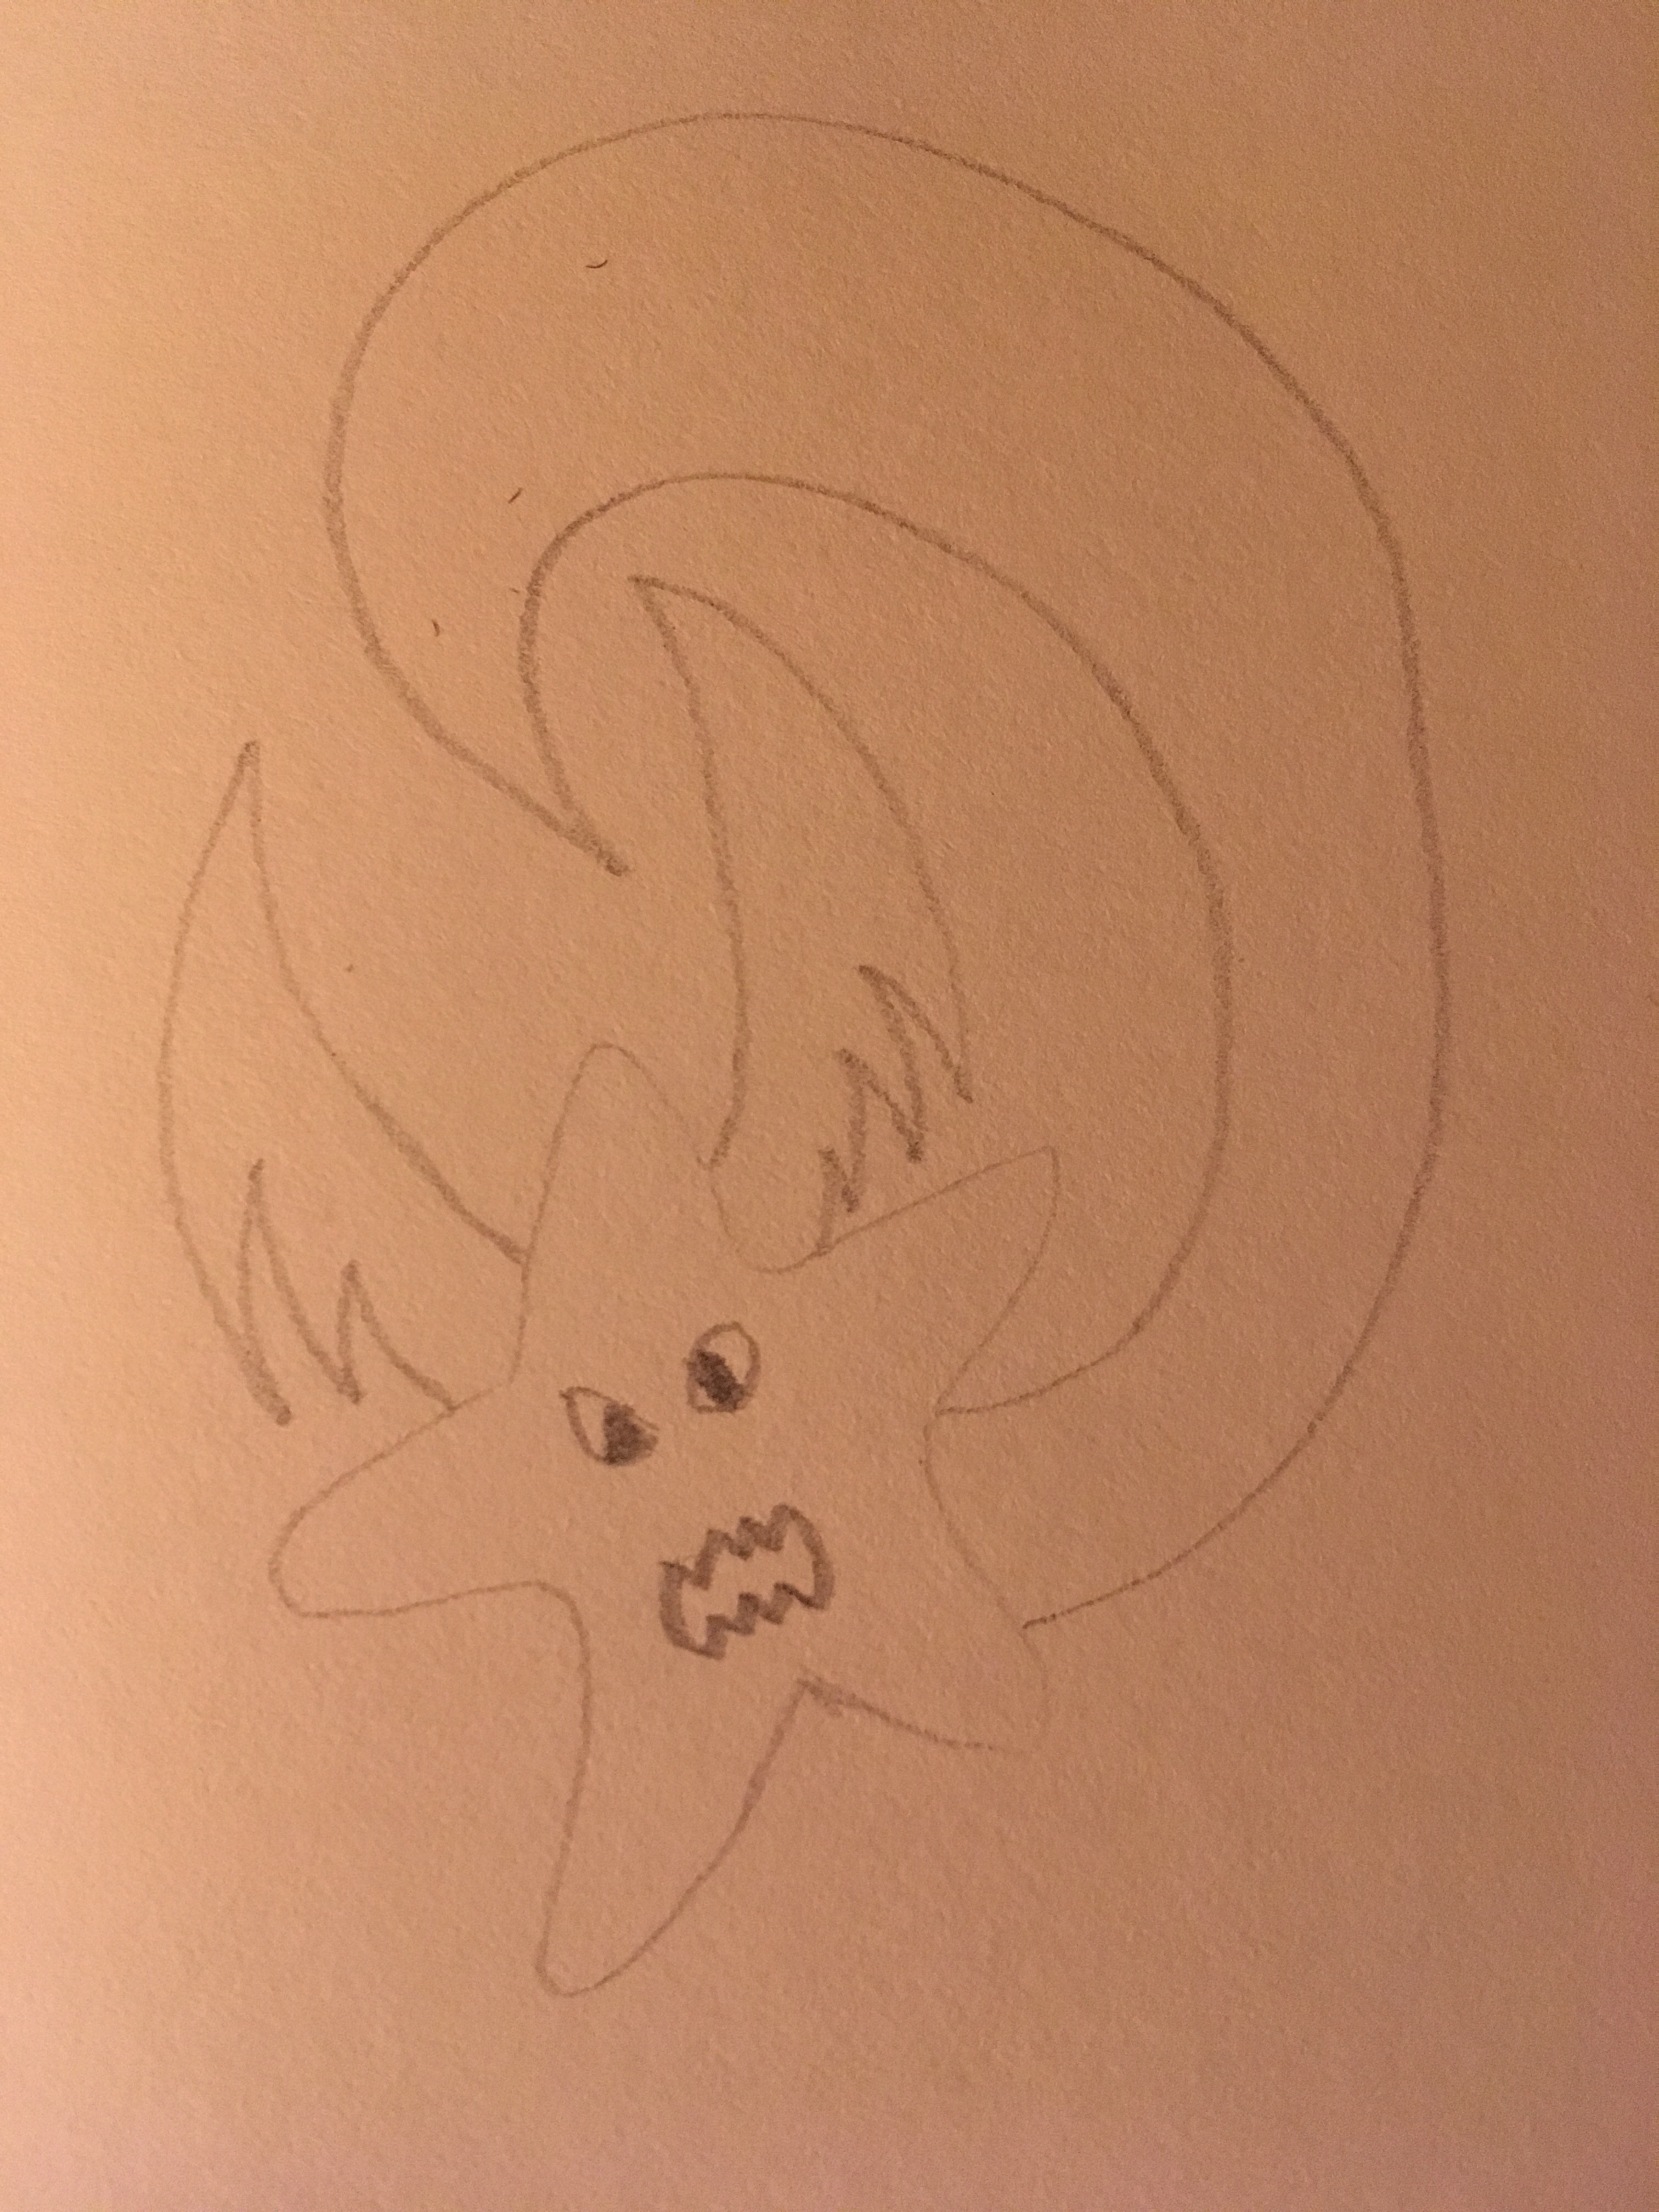 Star dragon in pencil rawr